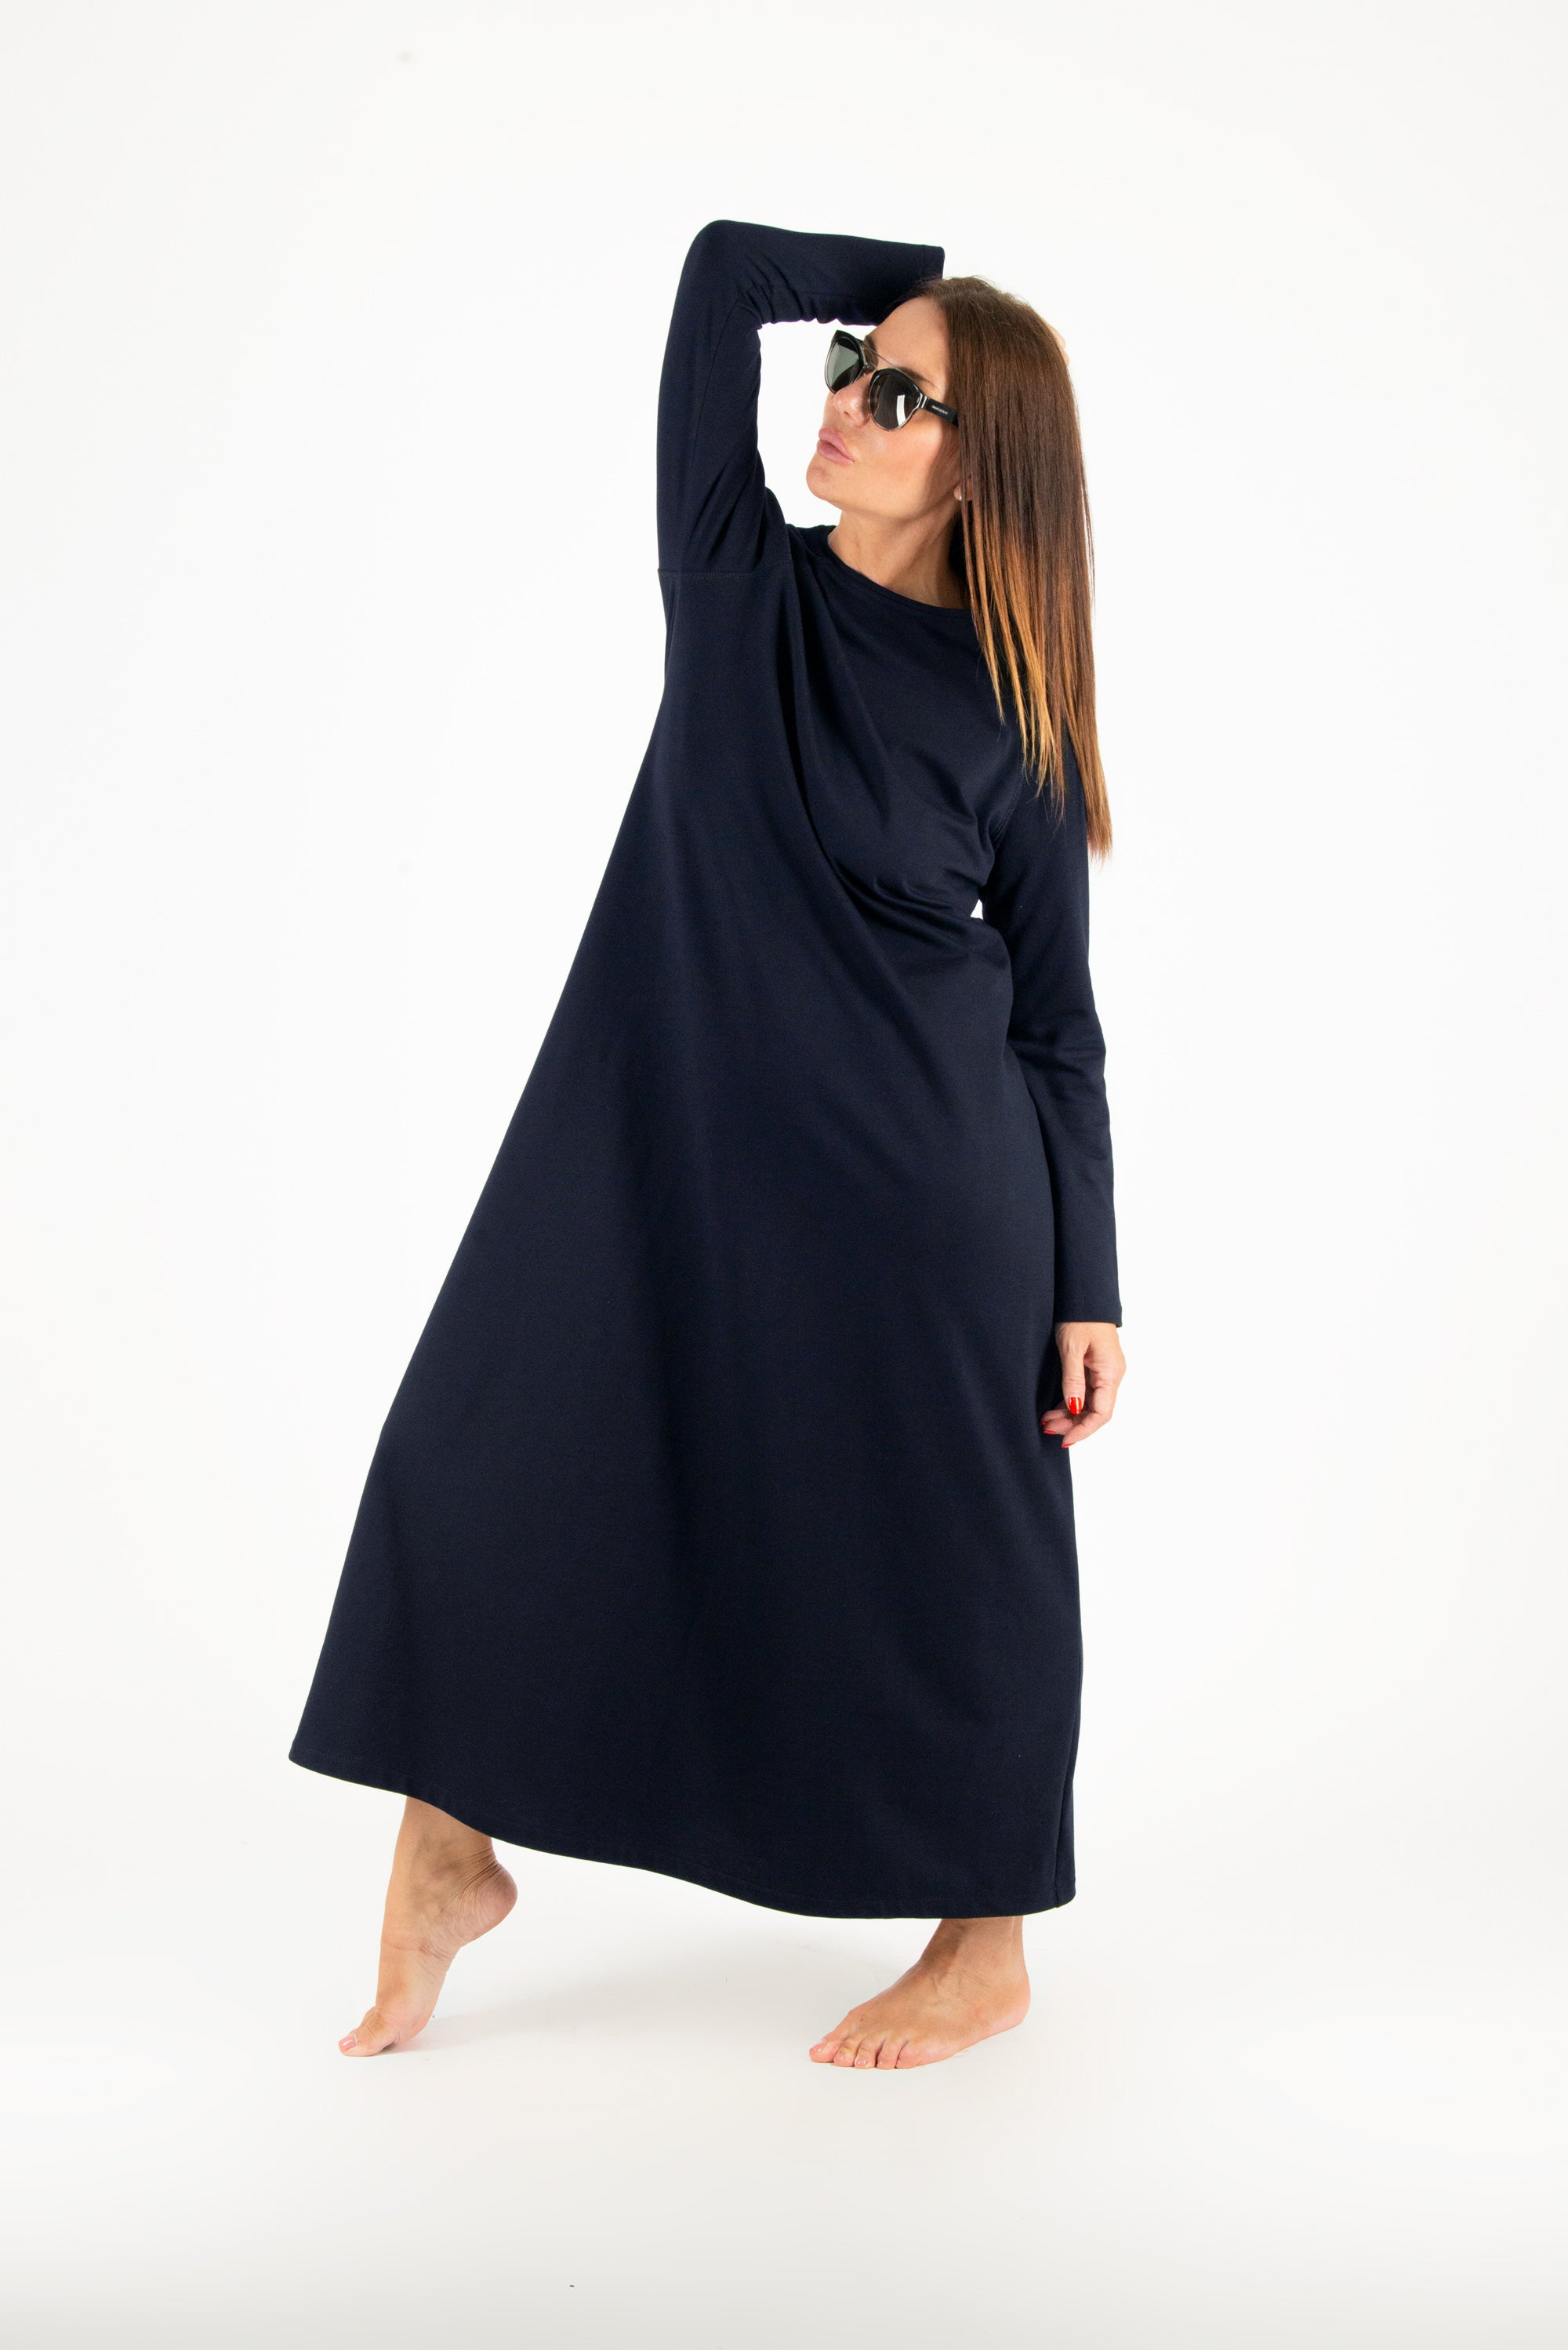 Winter Black Cotton dress